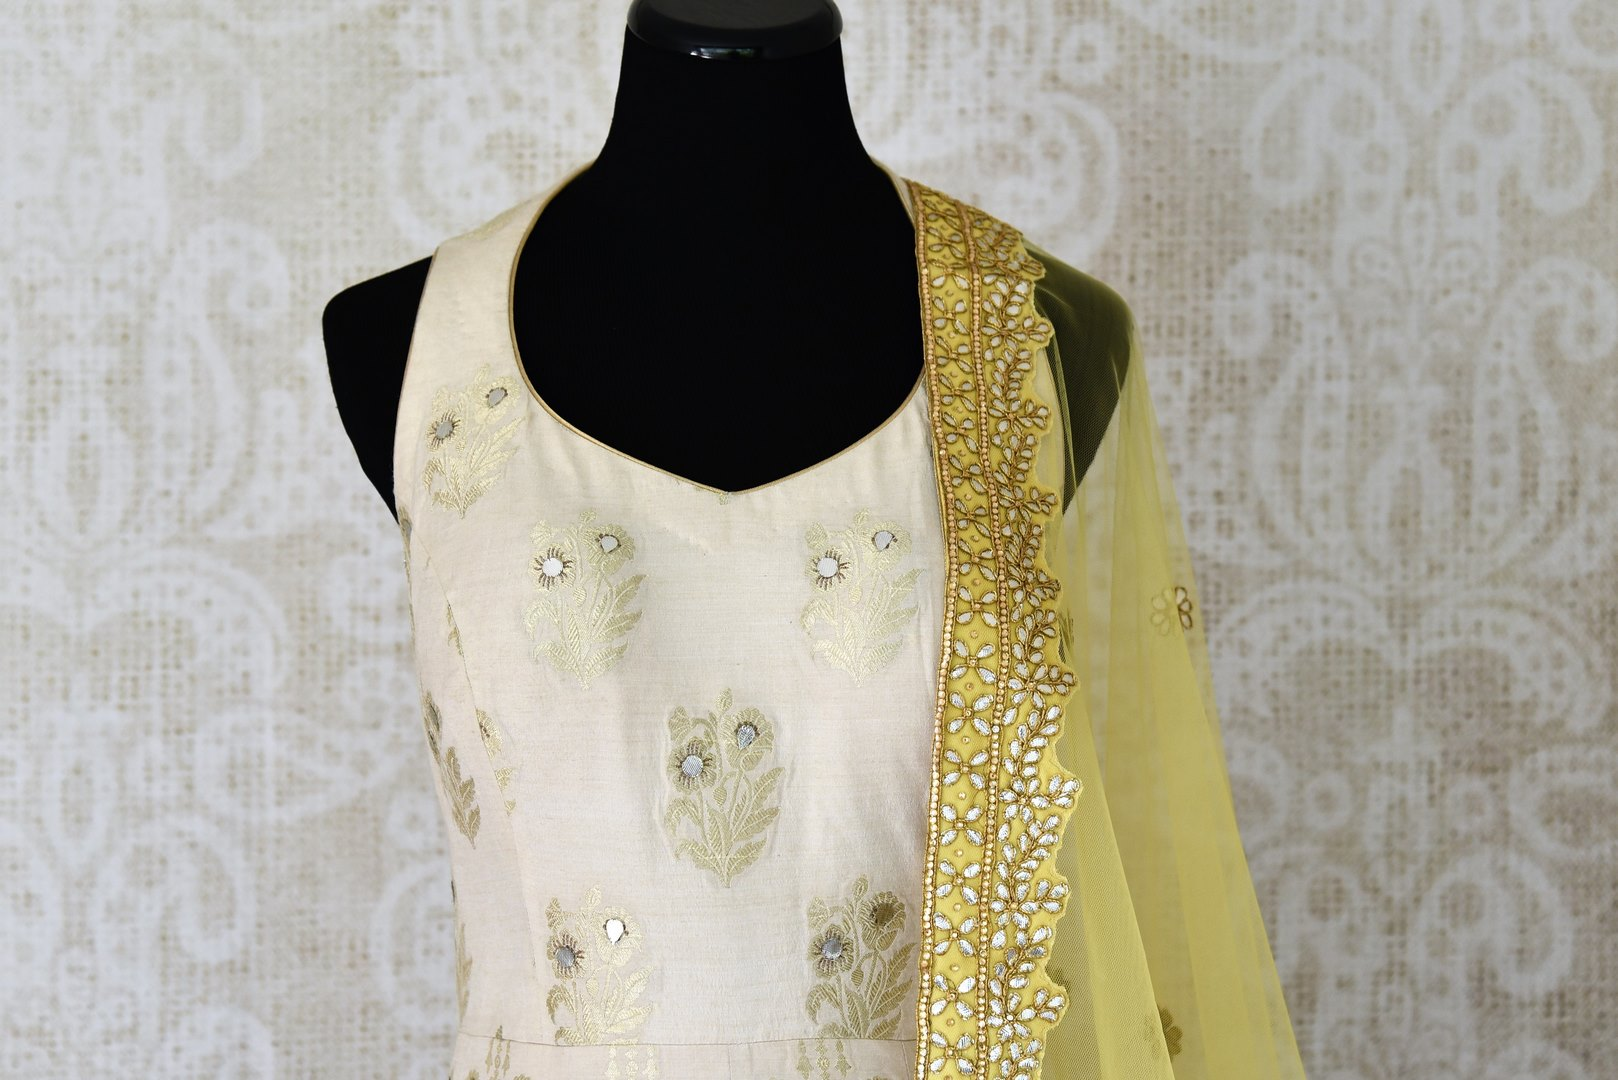 Buy white gota patti embroidery muga Banarasi suit with dupatta online in USA. Adorn your style with a range of exquisite Kanchipuram silk saris from Pure Elegance clothing store in USA. We have an exquisite range of Indian designer sarees, silk sarees, Banarasi saris and many other varieties also available at our online store.-front